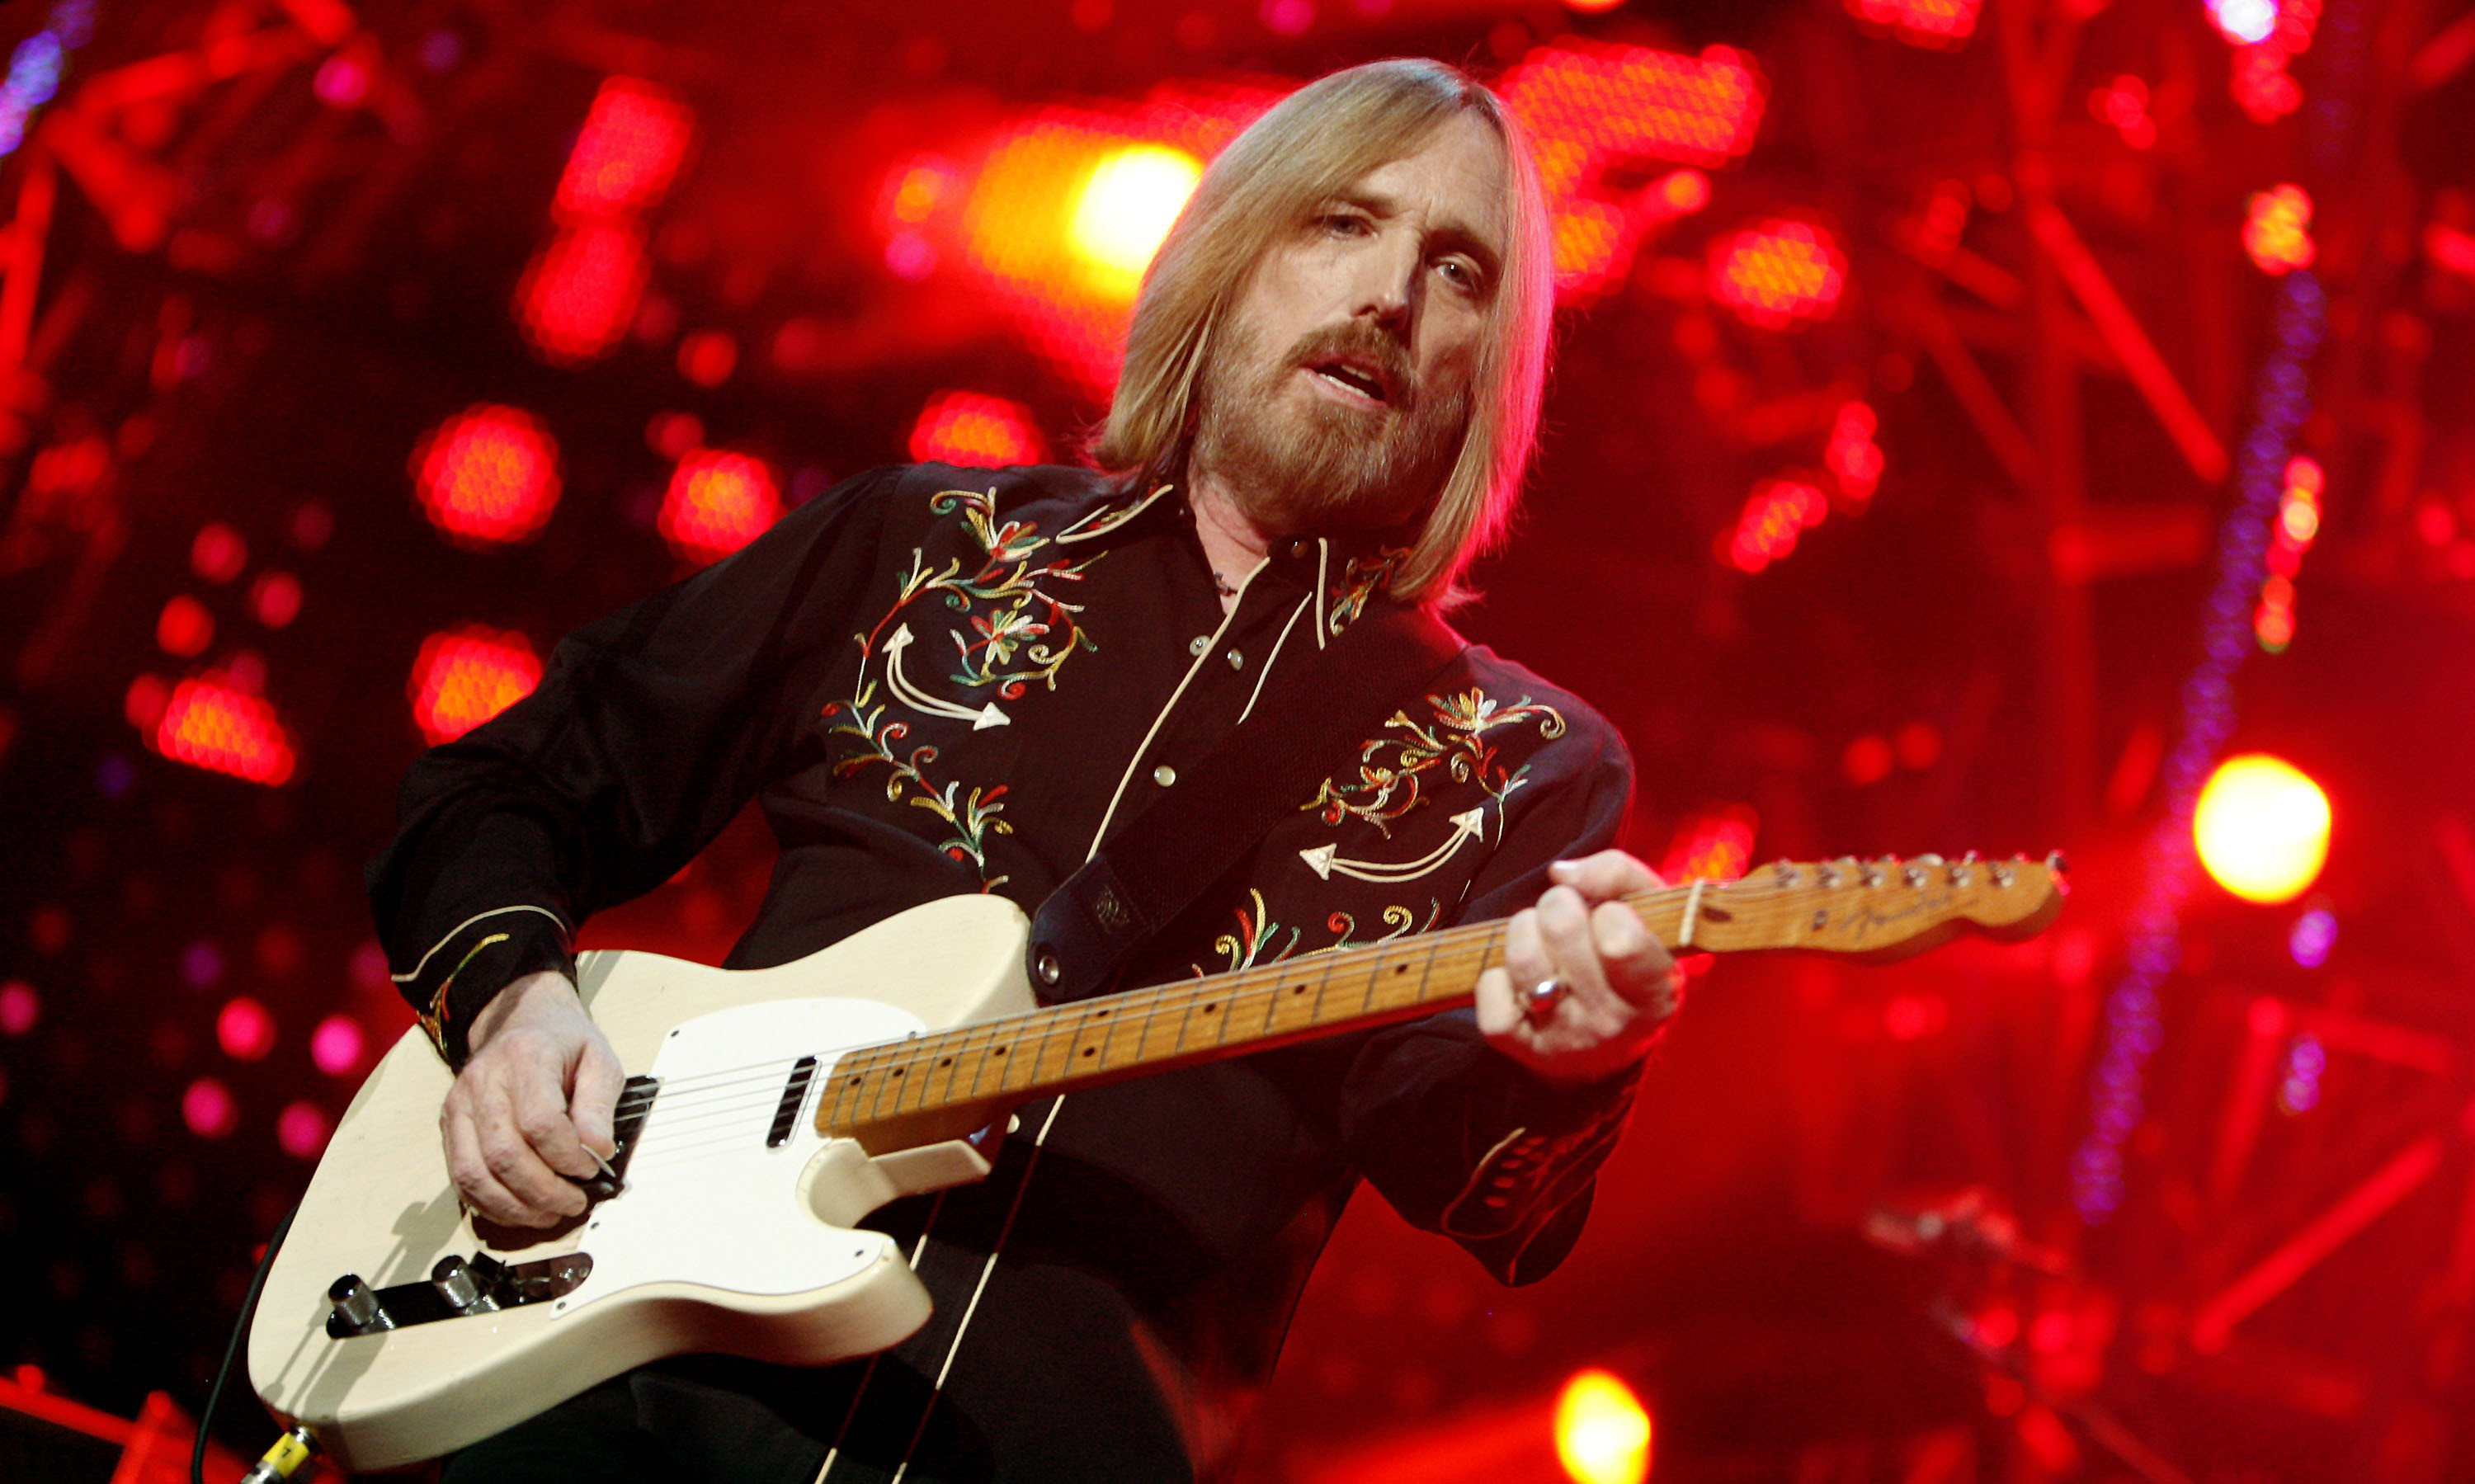 tom petty Thomas earl petty (october 20, 1950 – october 2, 2017) was an american singer-songwriter, multi-instrumentalist, record producer, and actor he was the lead singer of tom petty and the heartbreakers, formed in 1976.